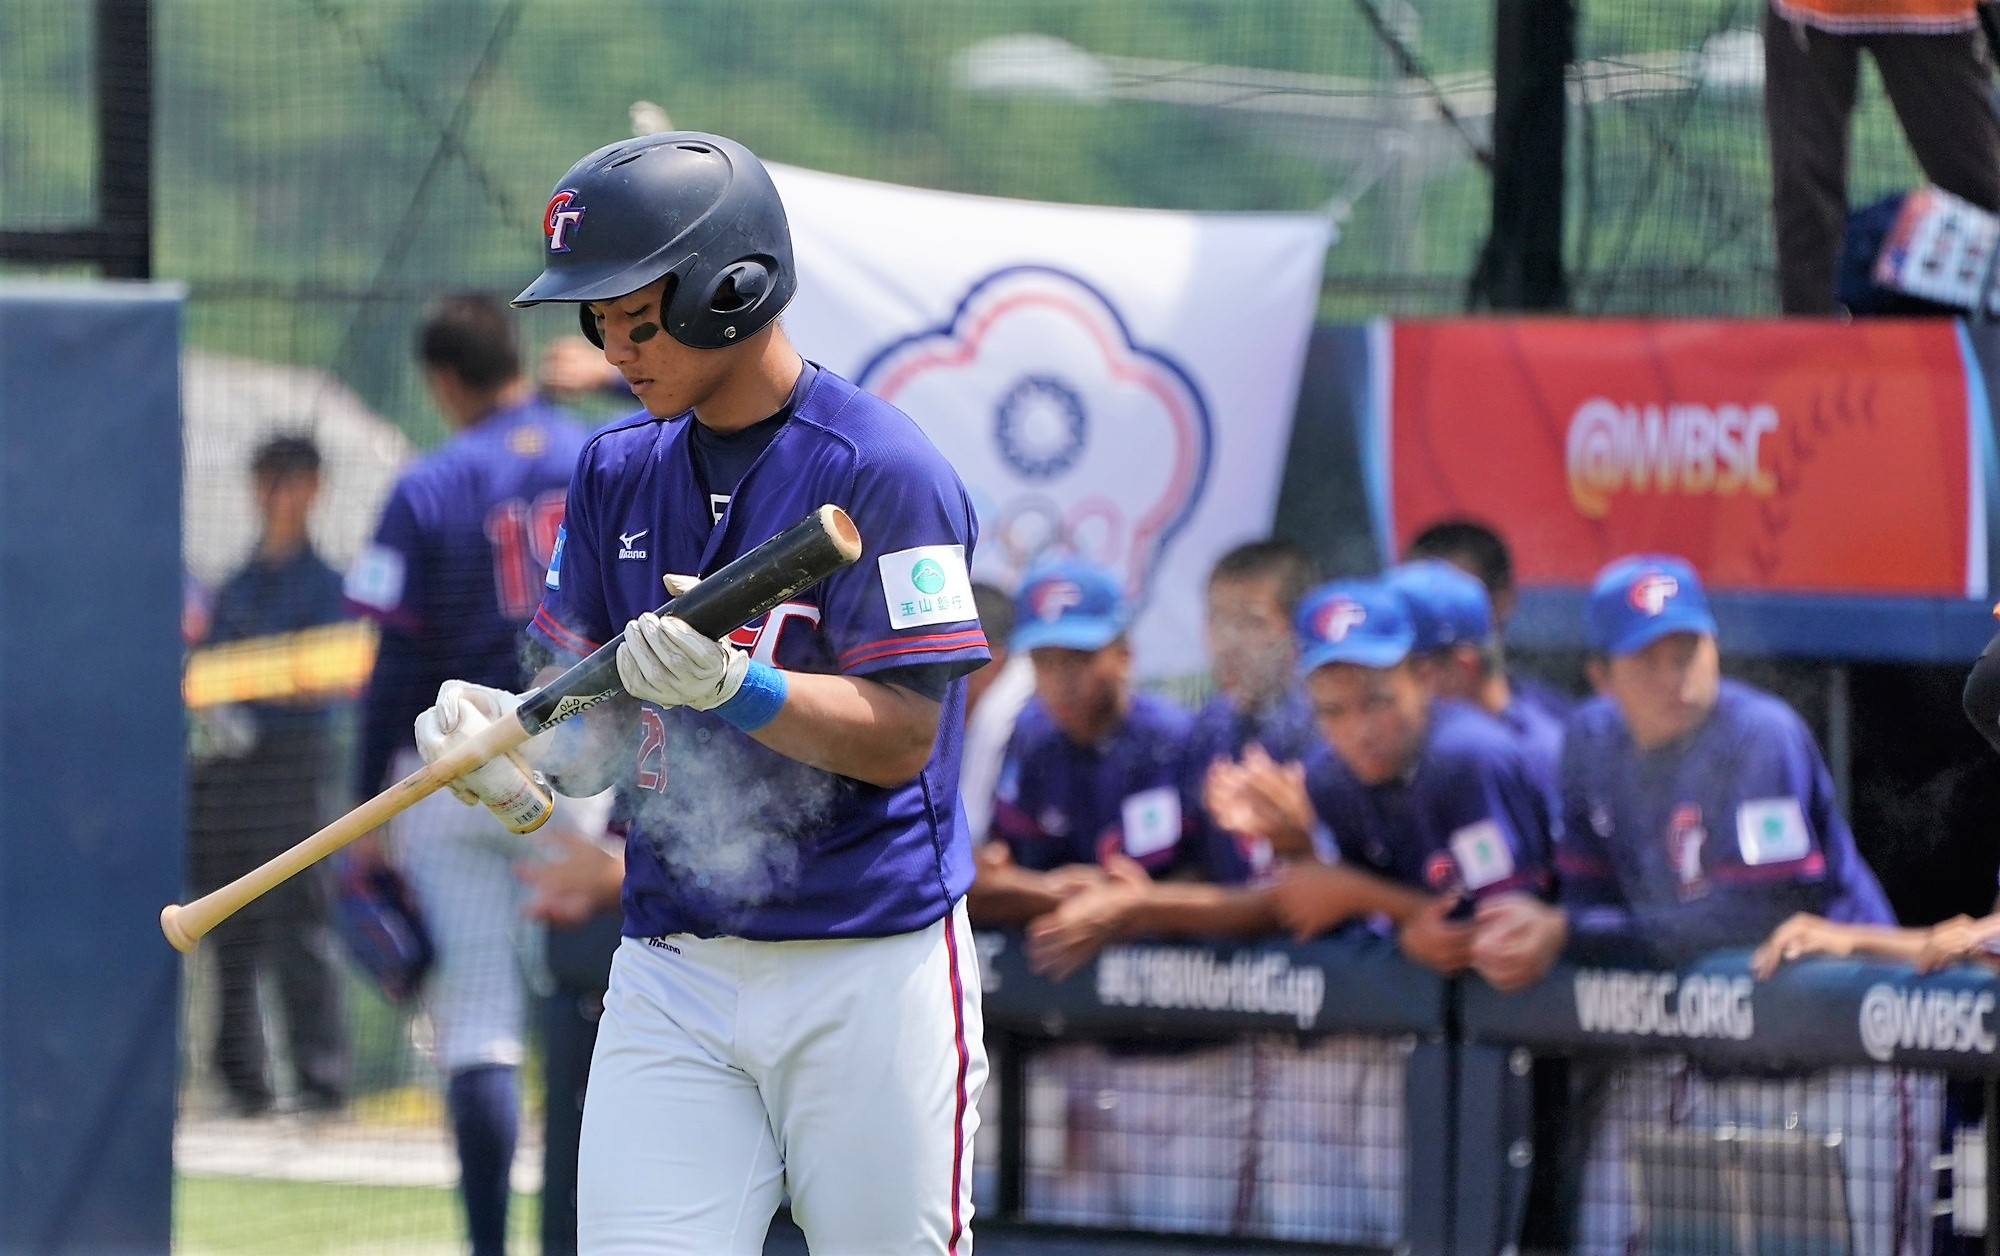 Chinese Taipei enjoyed a very good day at the plate